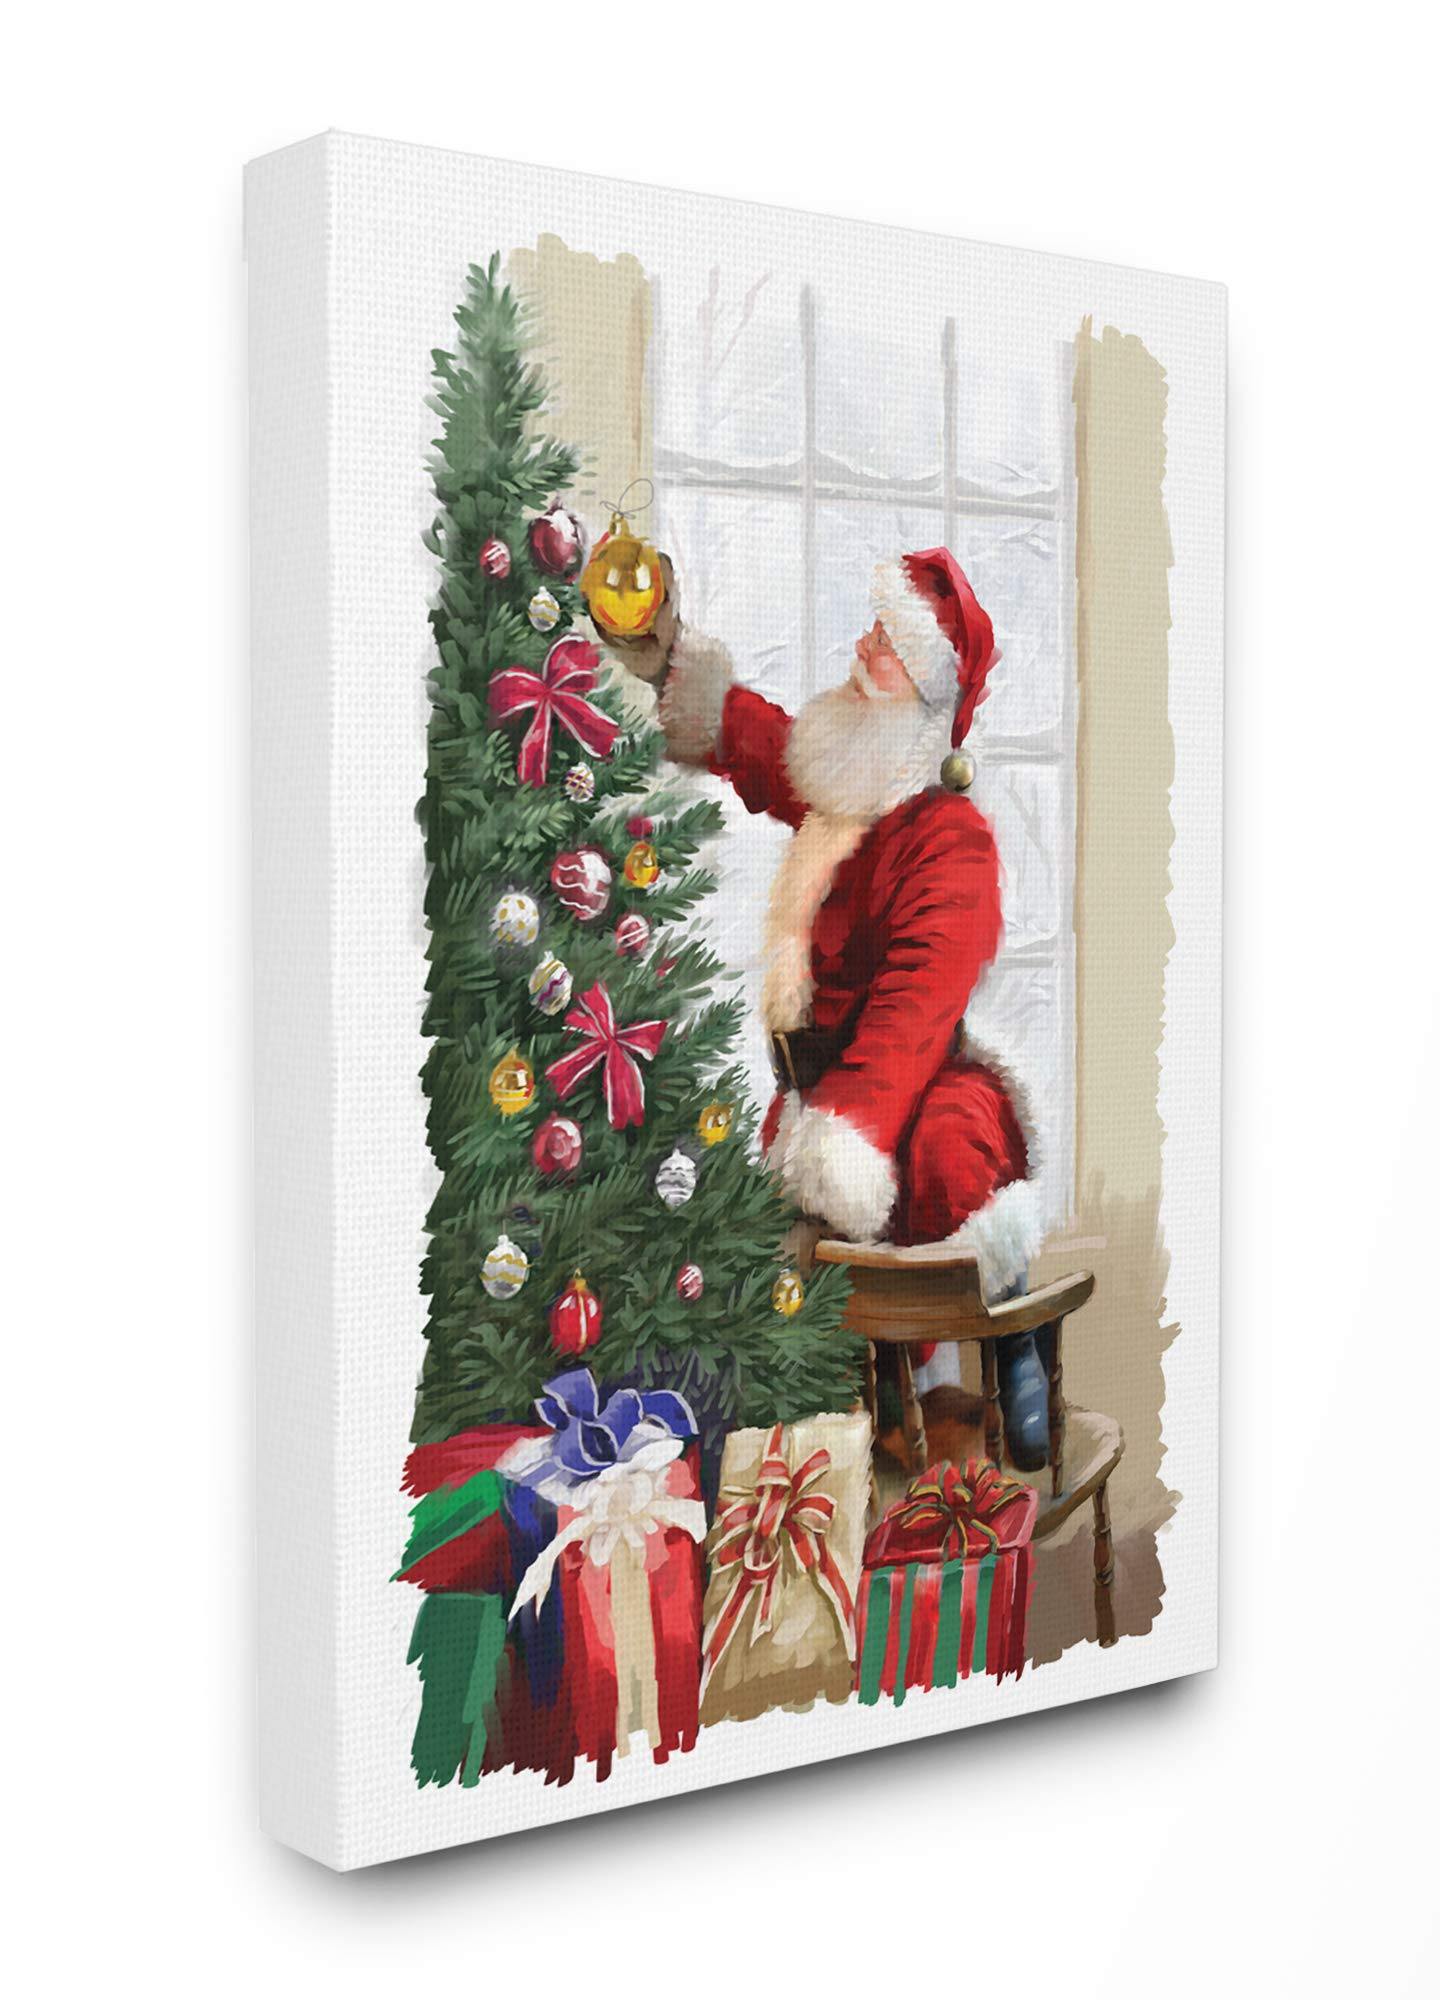 The Stupell Home Décor Collection Holiday Santa Decorating Christmas Tree with Gifts Painting Stretched Canvas Wall Art, Multi-Color